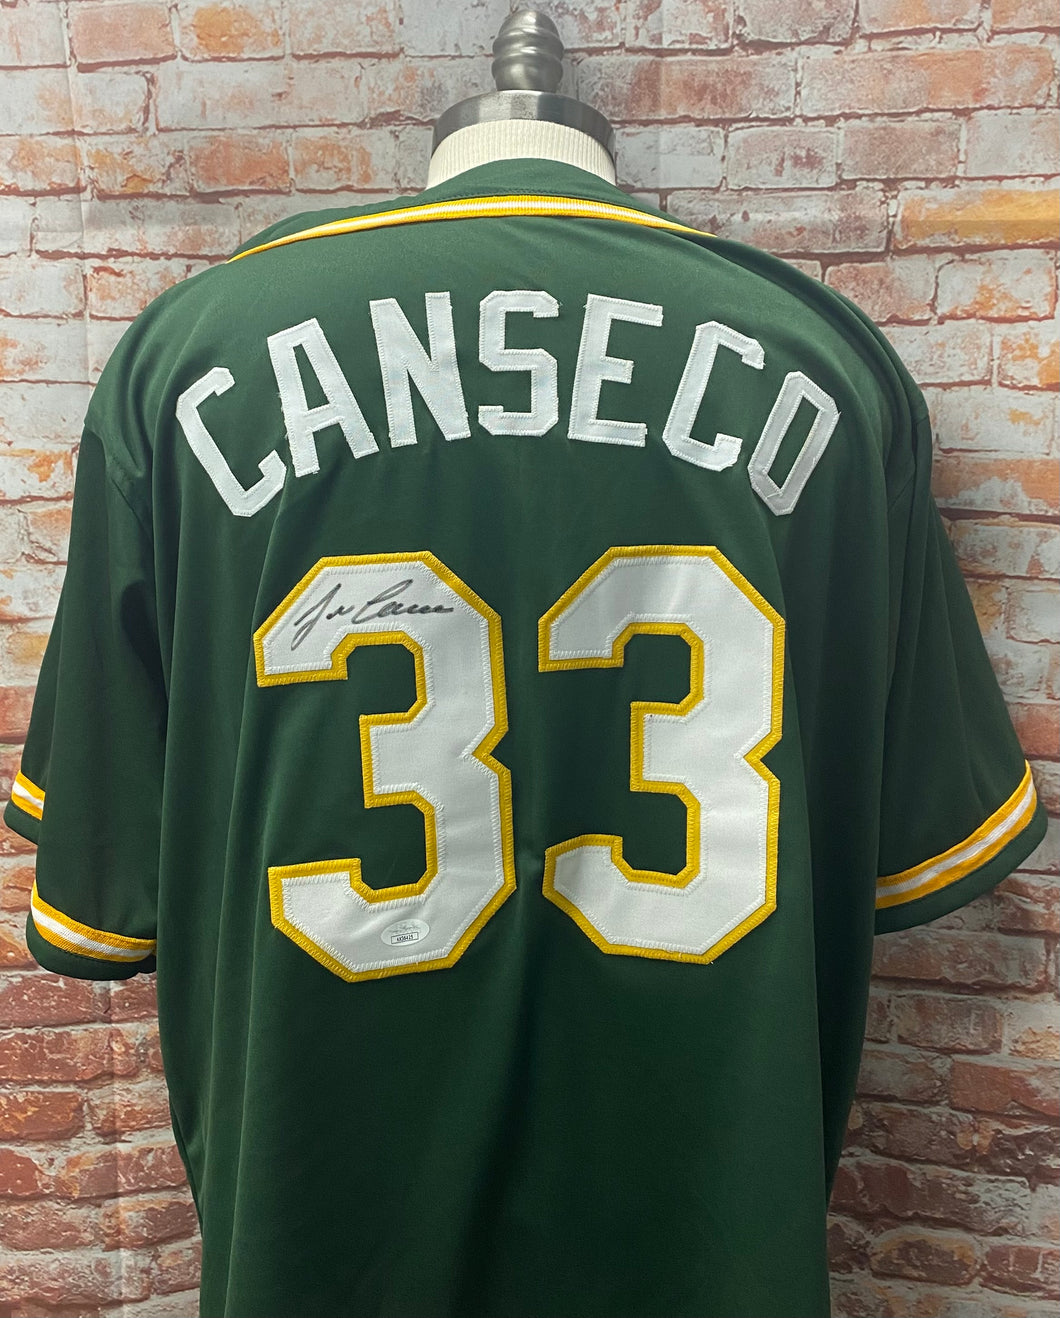 Jose Canseco Oakland Athletics Signed Custom Dk Green Jersey With JSA COA